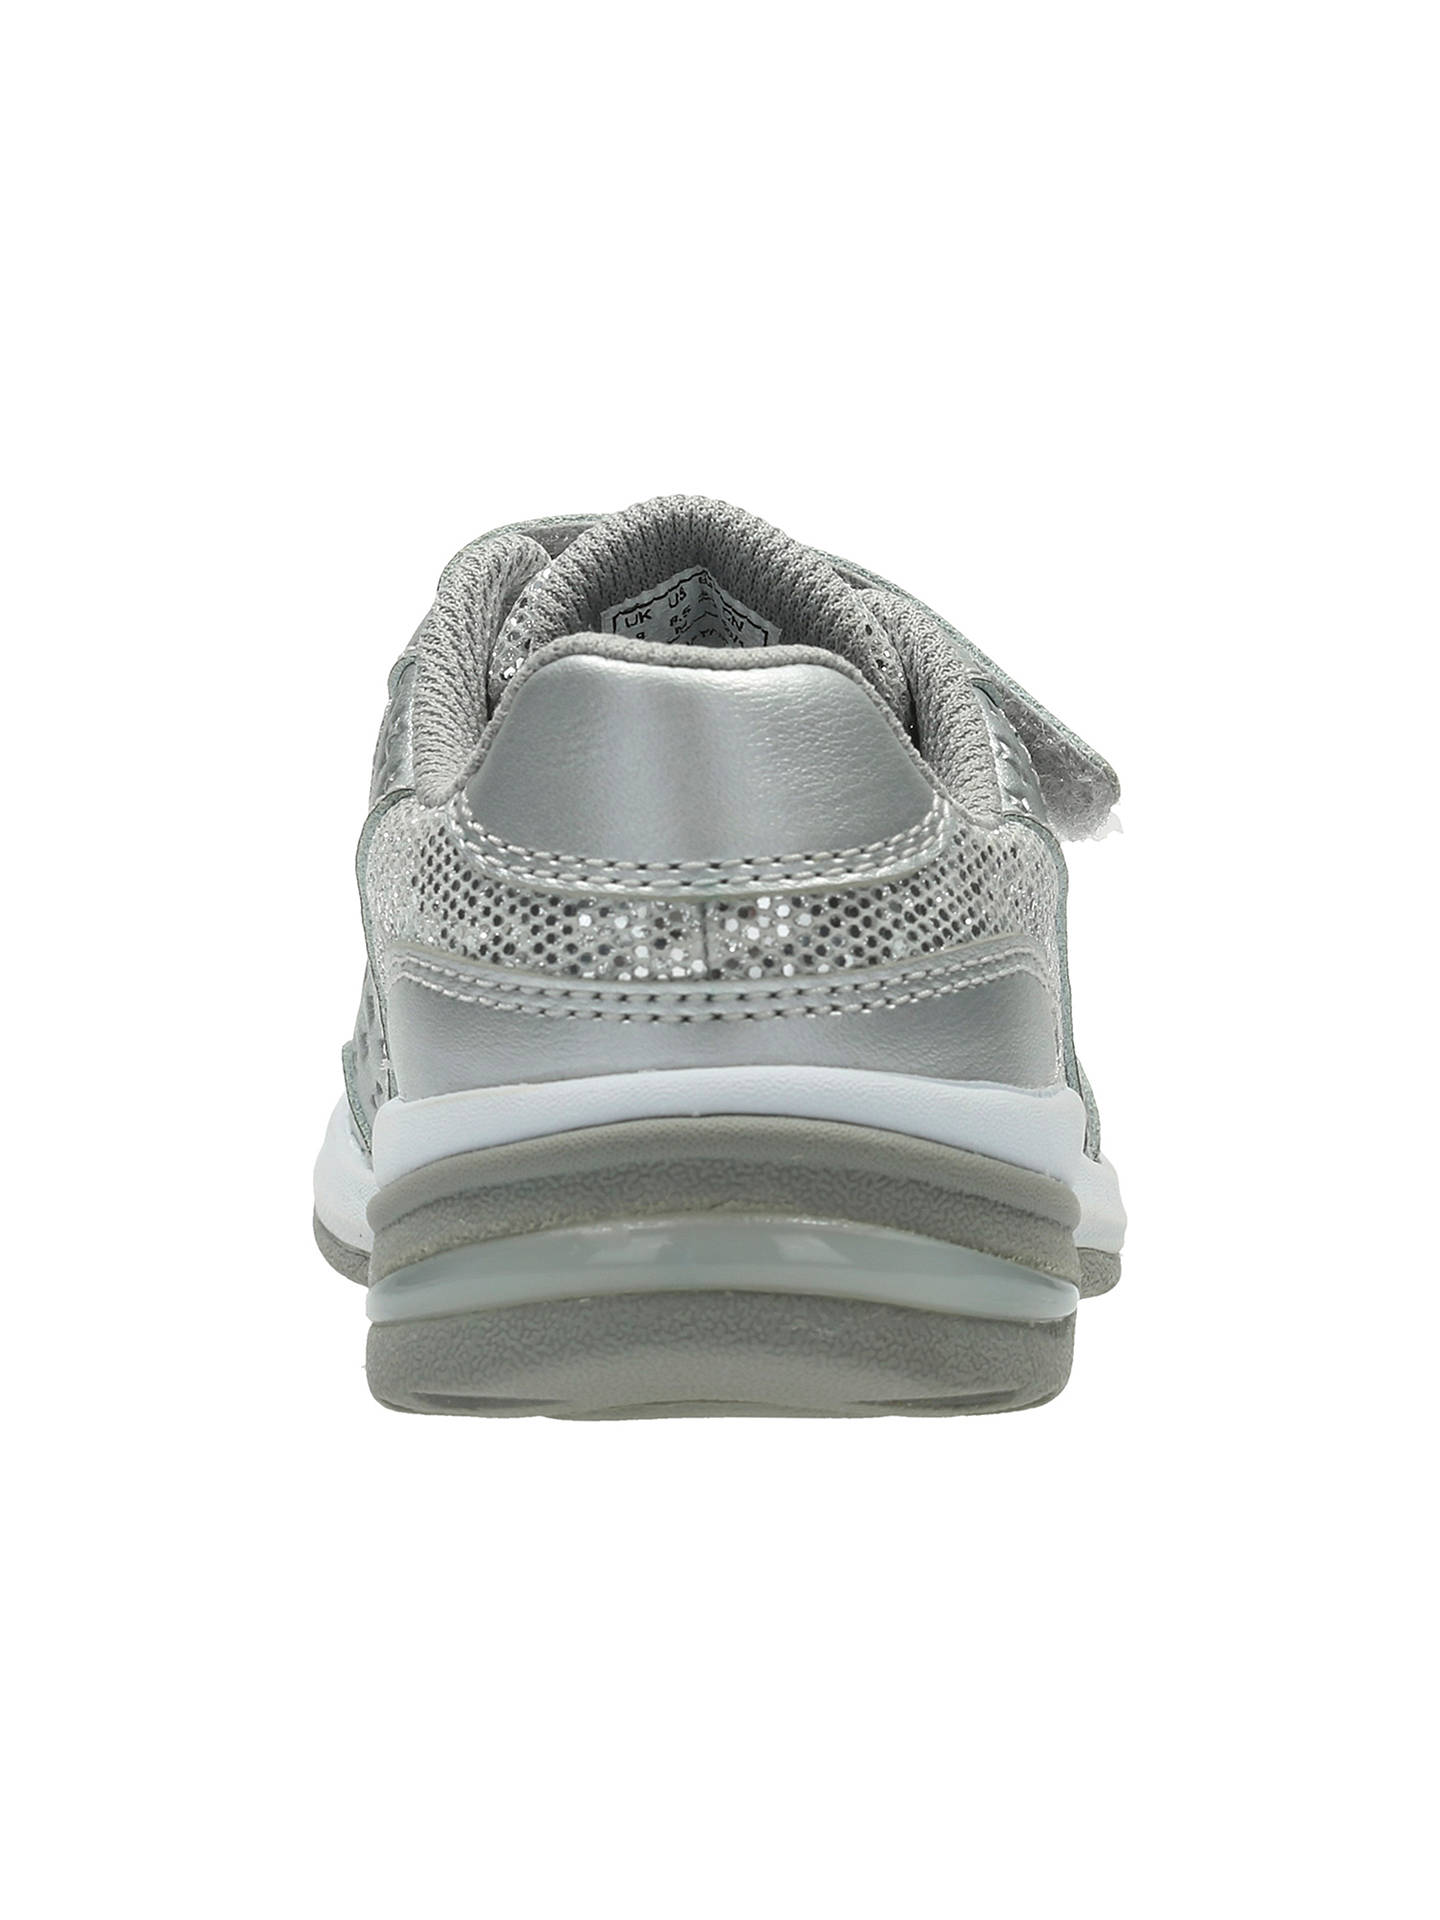 Clarks Childrens Piper Play Leather Shoes At John Lewis Partners Heart Buyclarks Silver 7f Online Johnlewis